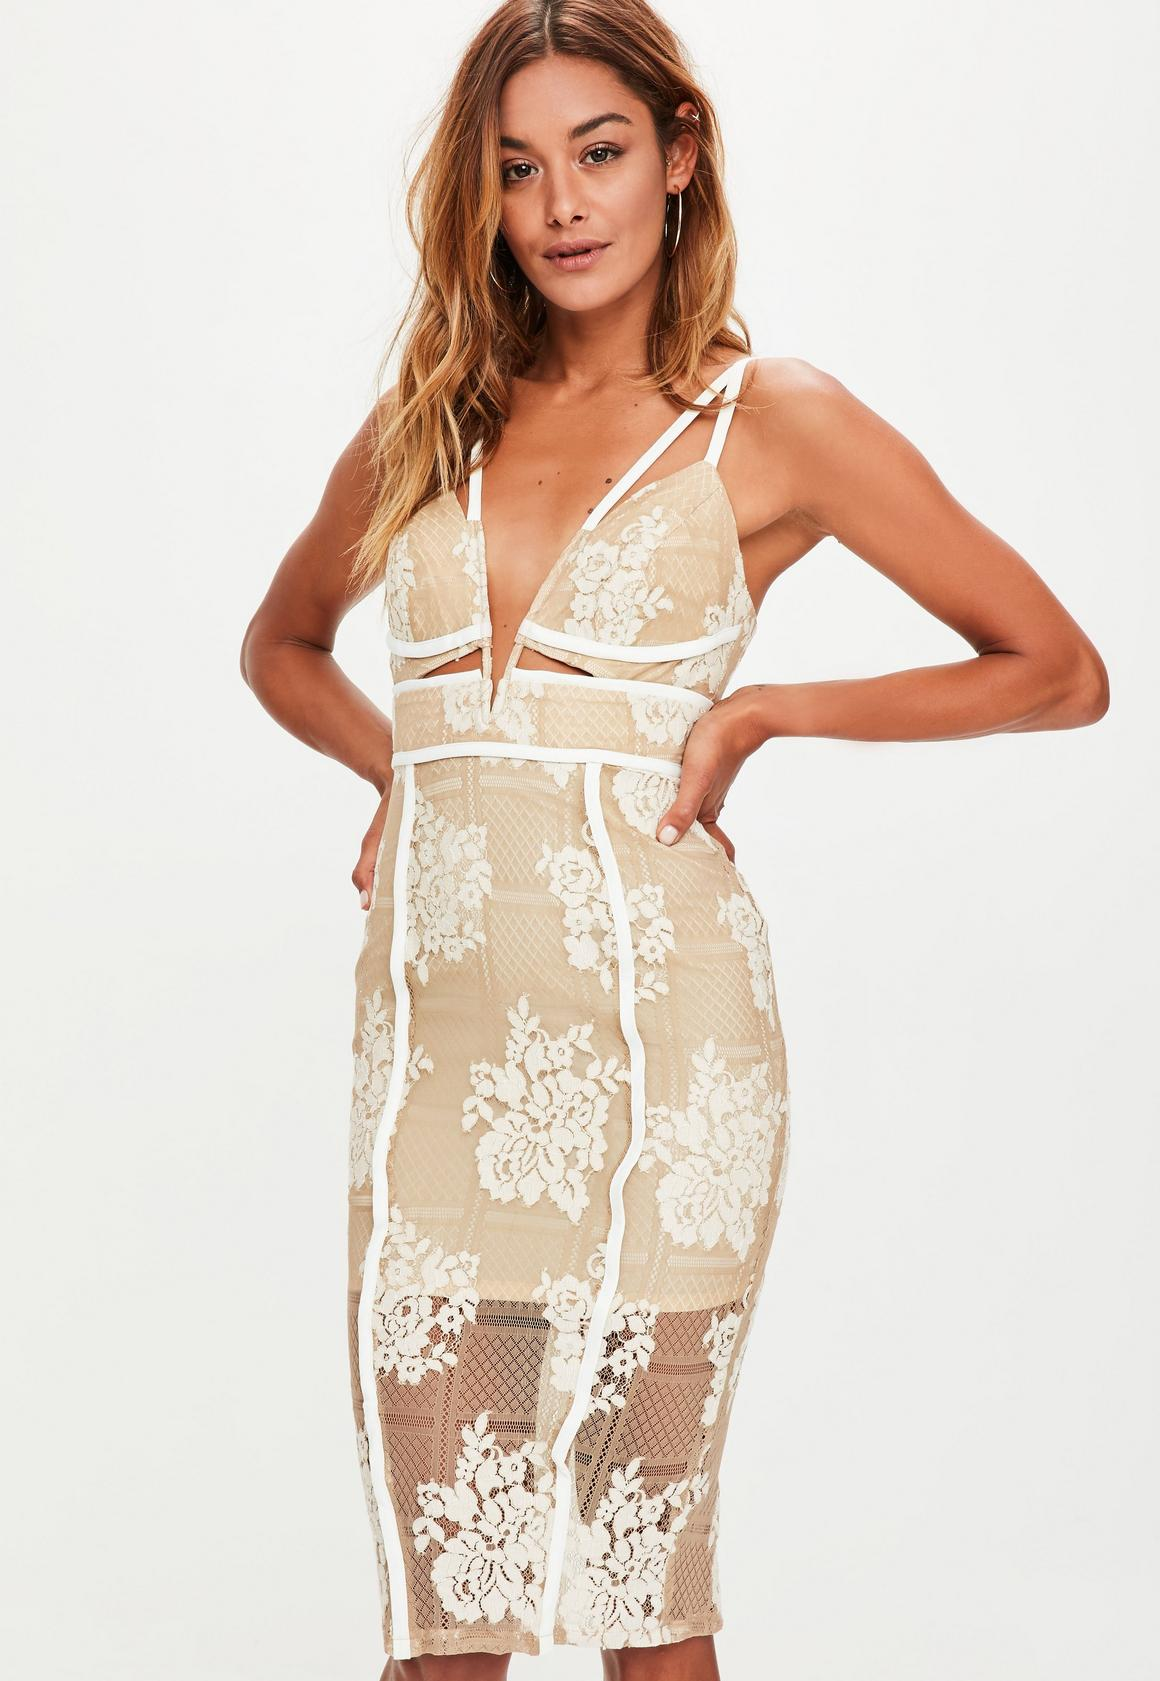 Cut Out Dresses - Cut Out Side Dresses Online | Missguided